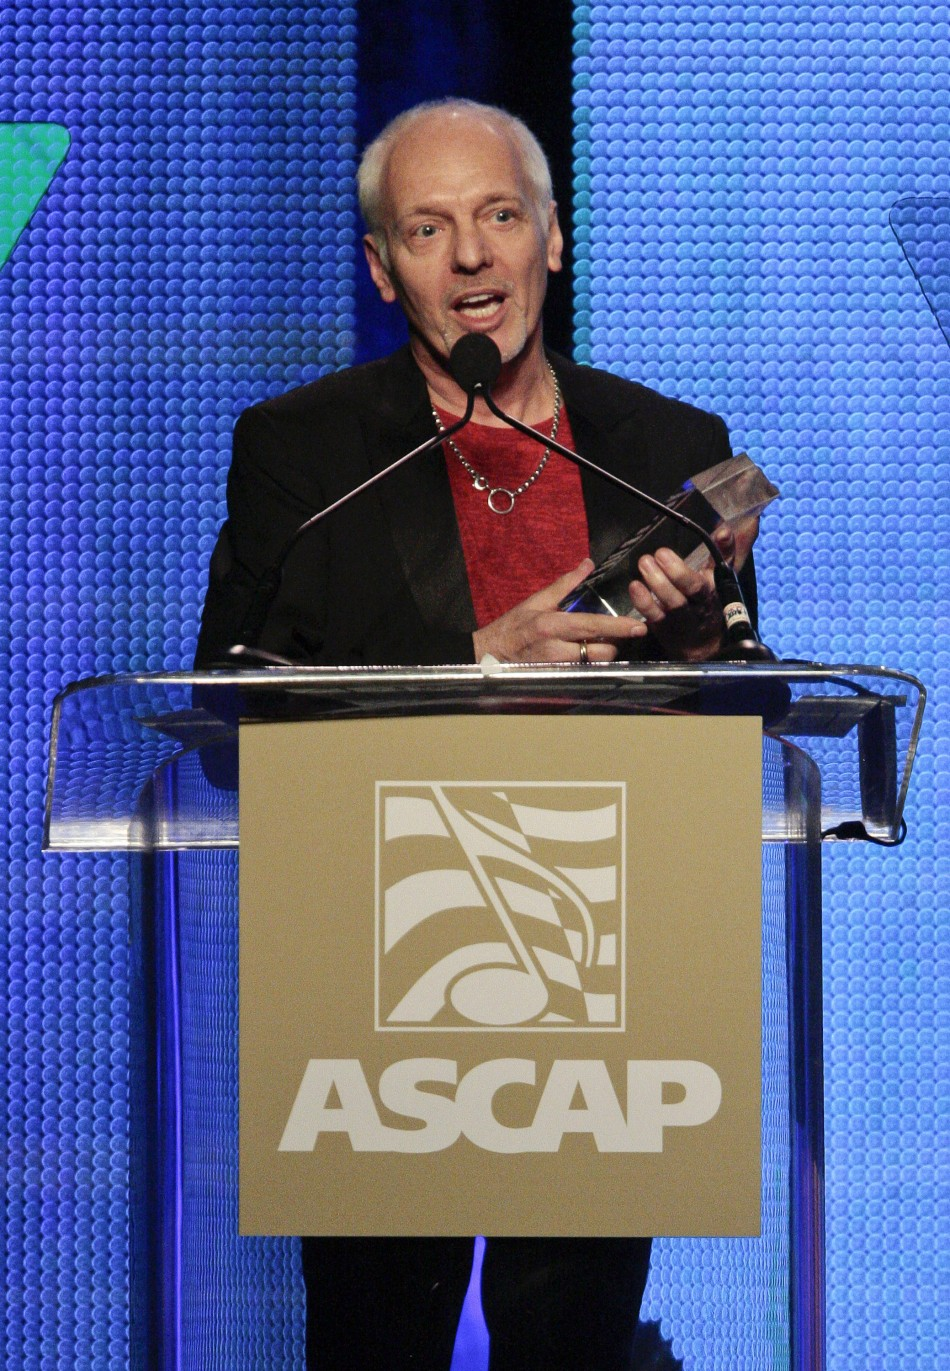 Musician Peter Frampton accepts the Global Impact Award at the 29th Annual ASCAP Pop Music Awards in Hollywood, California